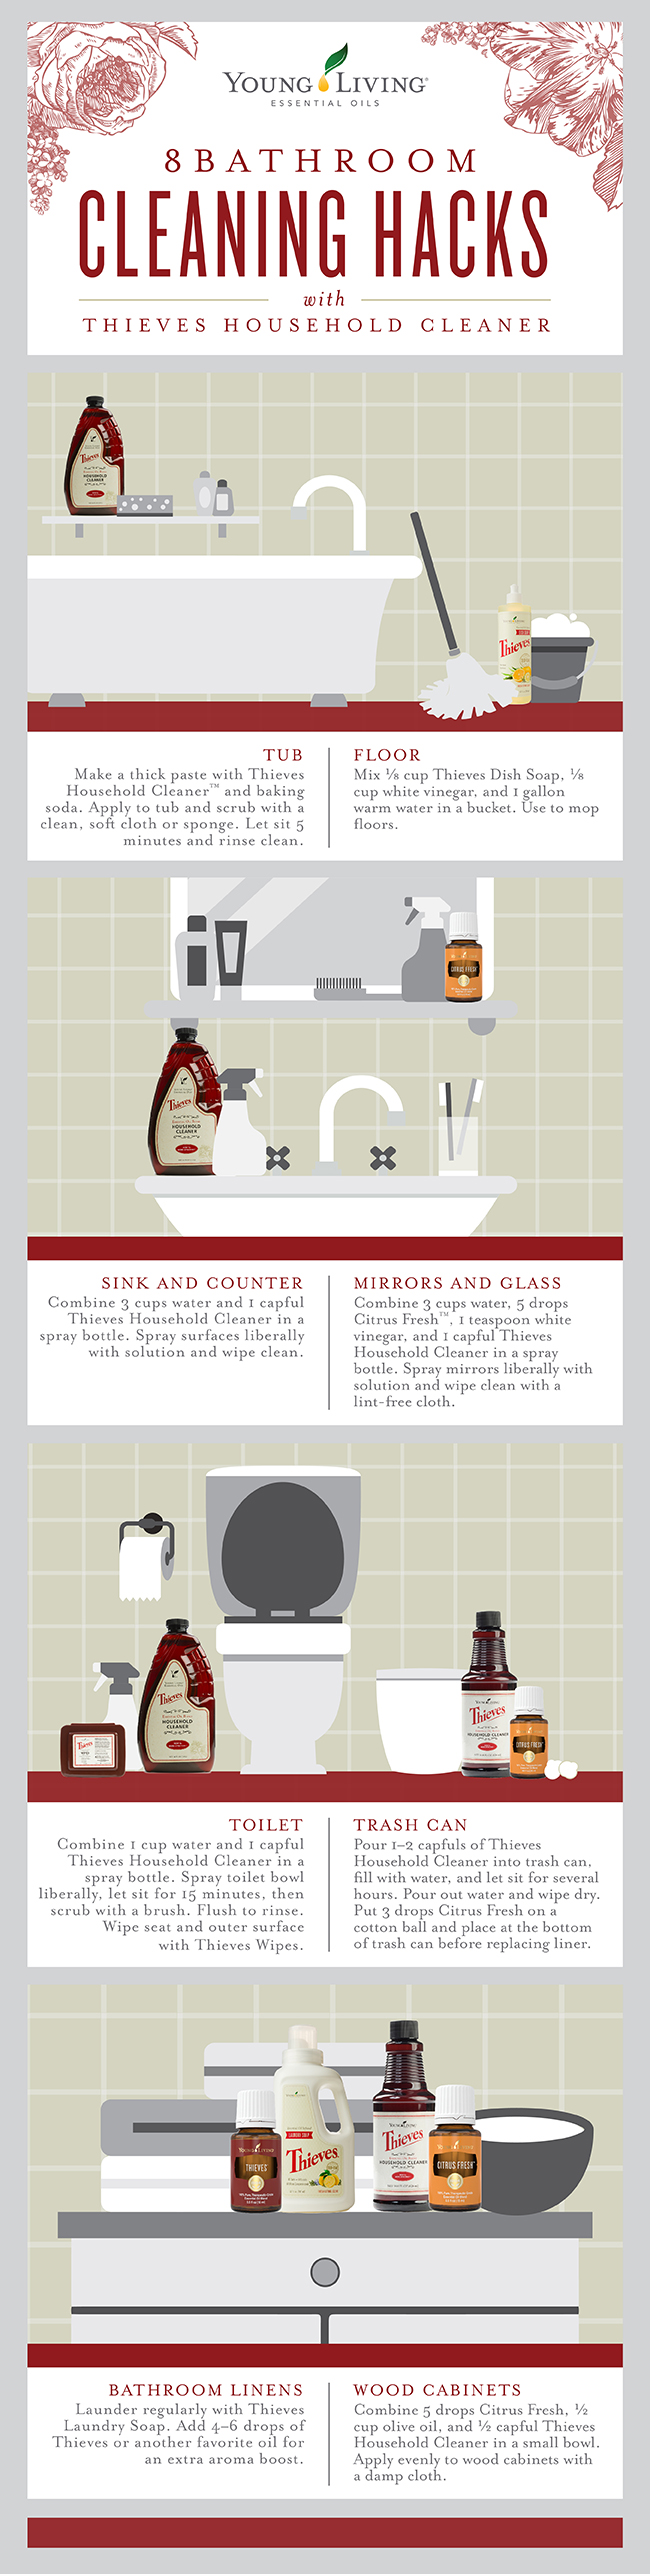 Blog-8-Bathroom-Cleaning-Hacks_Infographic_US-01.jpg